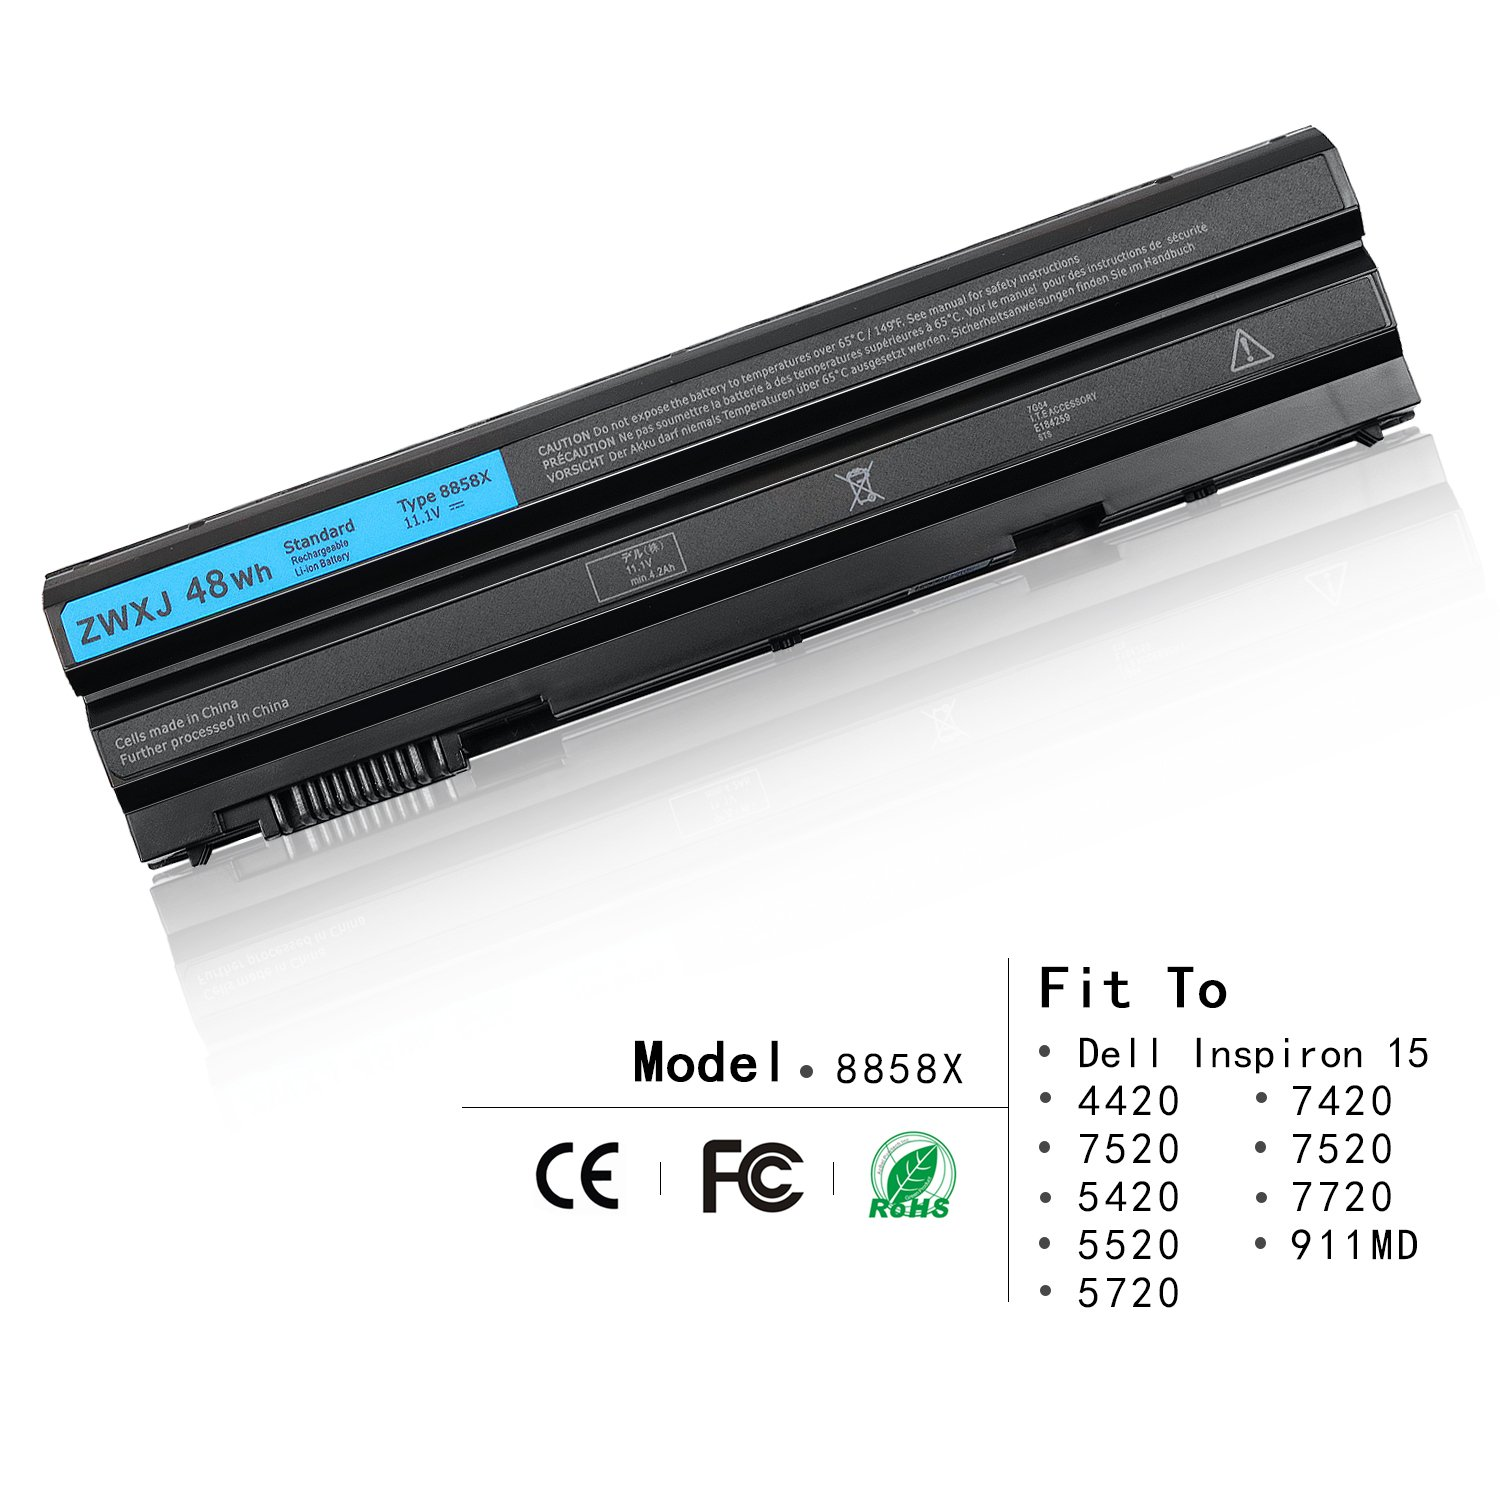 ZWXJ Laptop Battery 8858X (11.1V 48WH) for Dell Inspiron 15 4420 7520 5420 5520 5720 7420 7520 7720 8P3YX 911MD 451-12048 E5420 E5430 E5530 E6420 E6430 E6520 E6530 N4420 N4720 T54FJ M5Y0X N3X1D 911MD